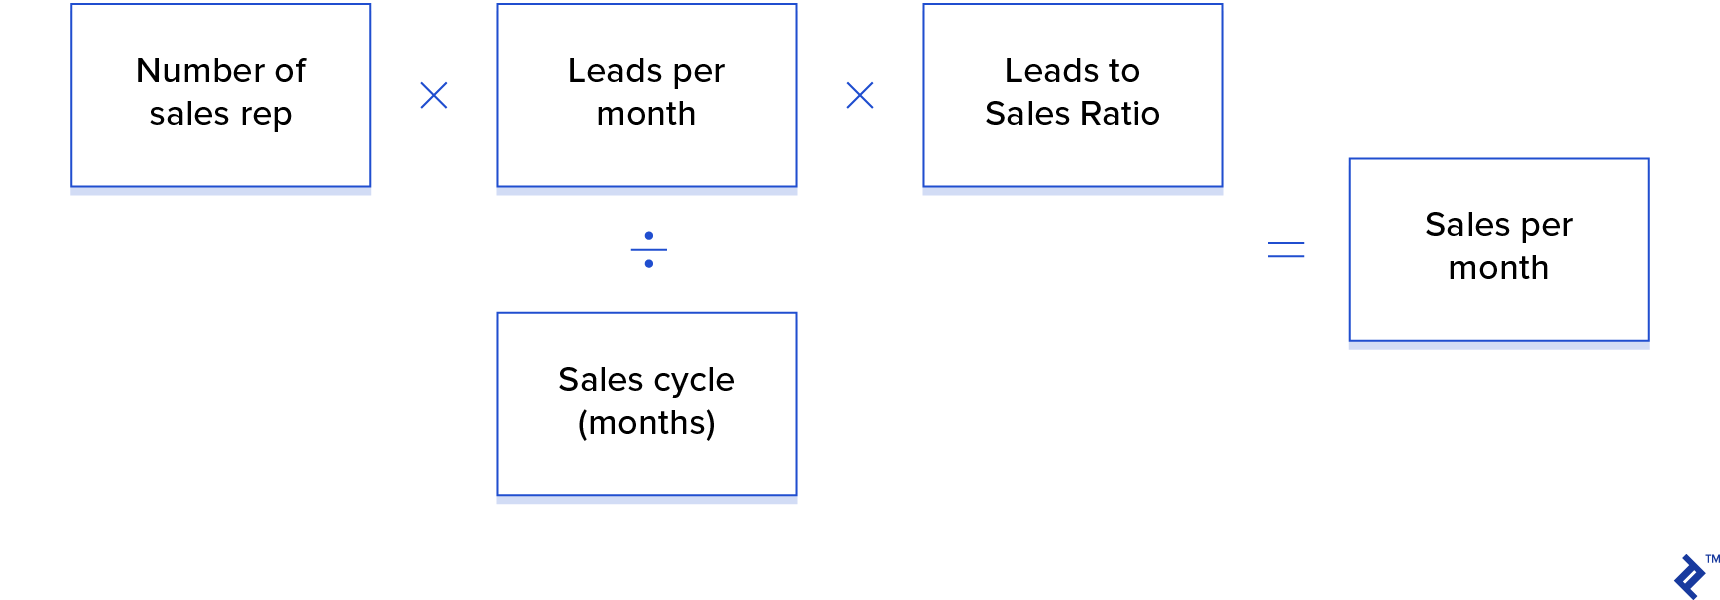 Example of a Two-staged Acquisition Process